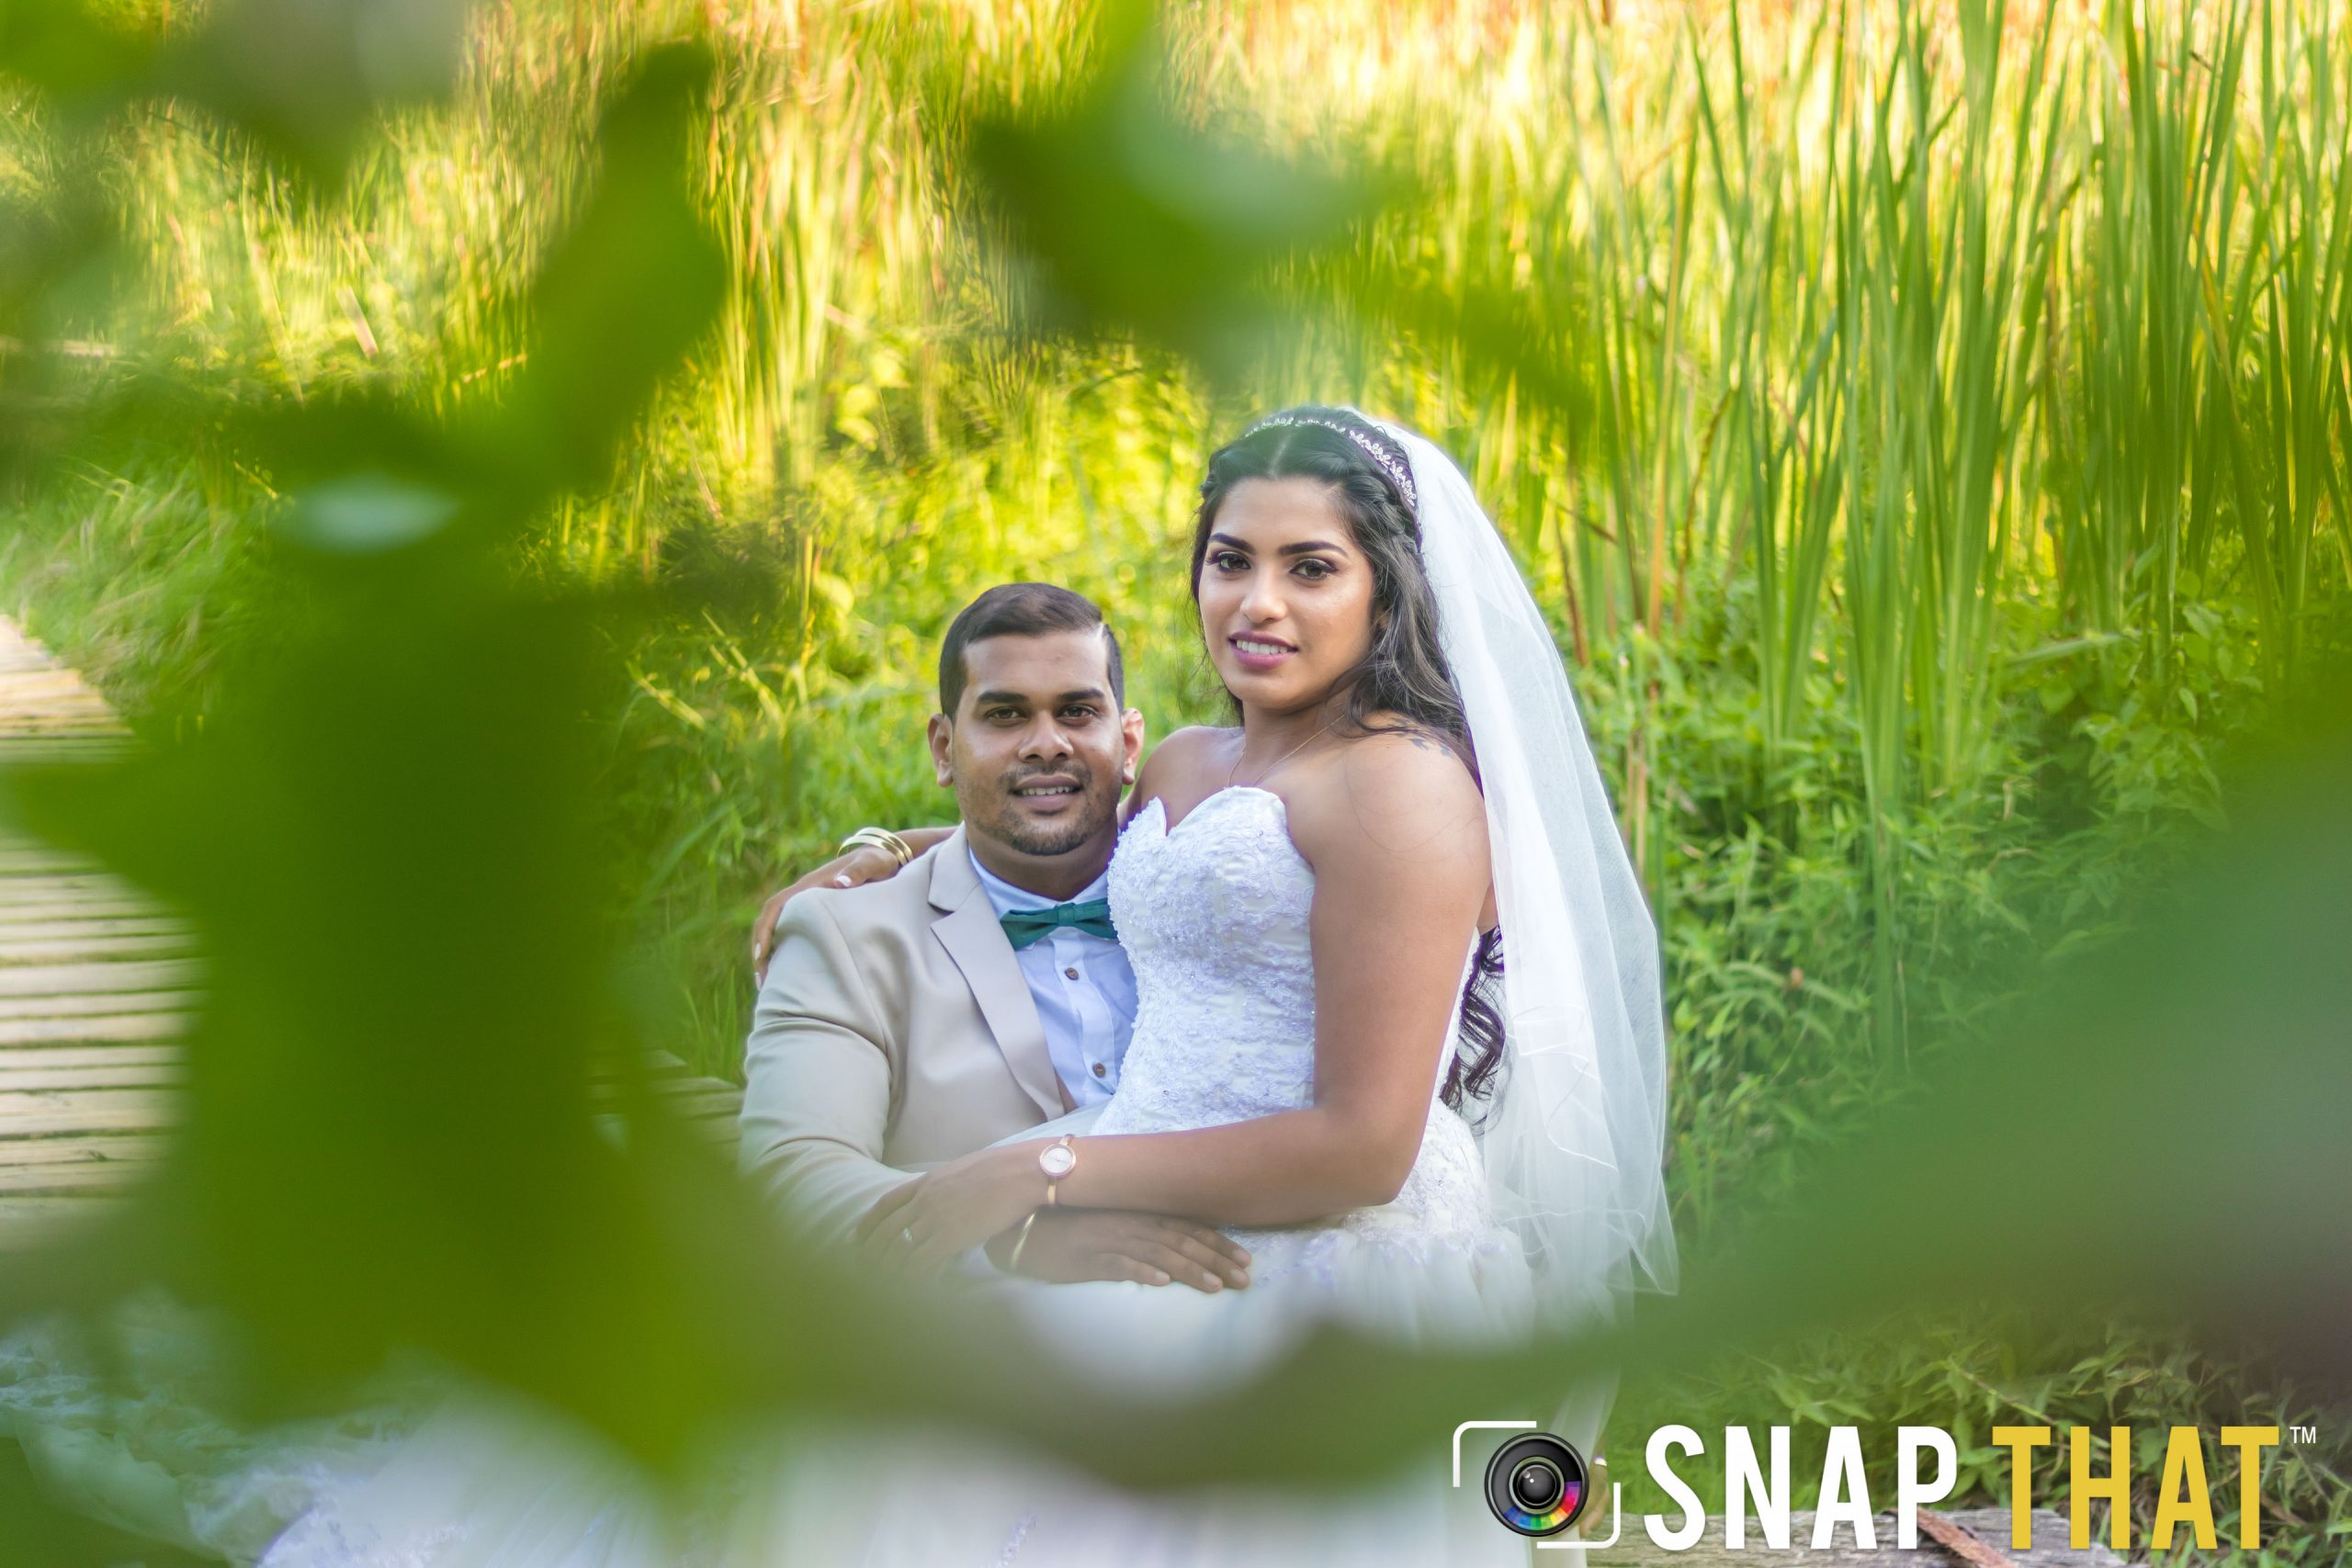 Lenton & Yuvani's Wedding